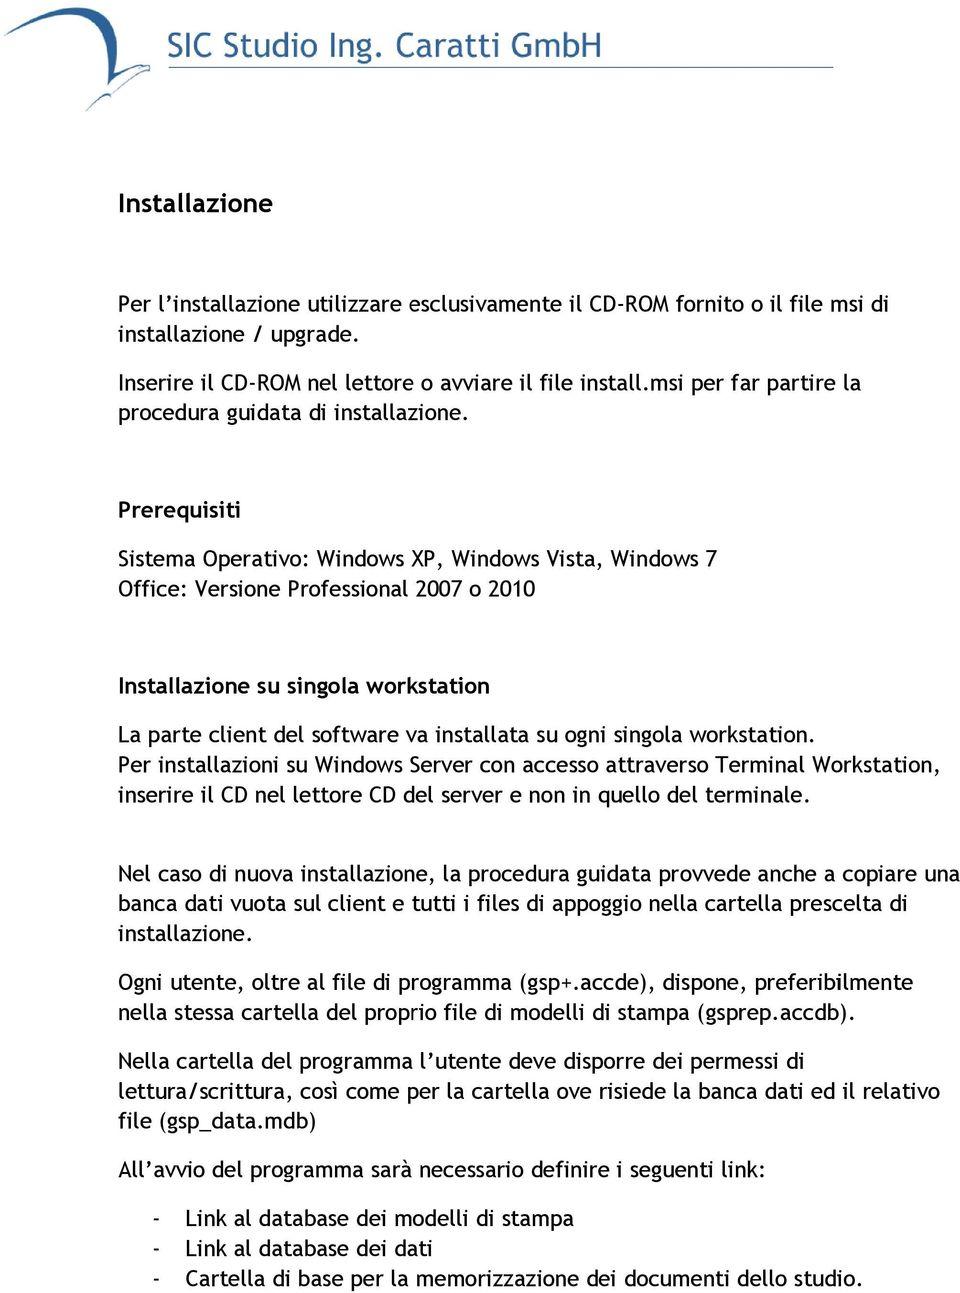 Prerequisiti Sistema Operativo: Windows XP, Windows Vista, Windows 7 Office: Versione Professional 2007 o 2010 Installazione su singola workstation La parte client del software va installata su ogni